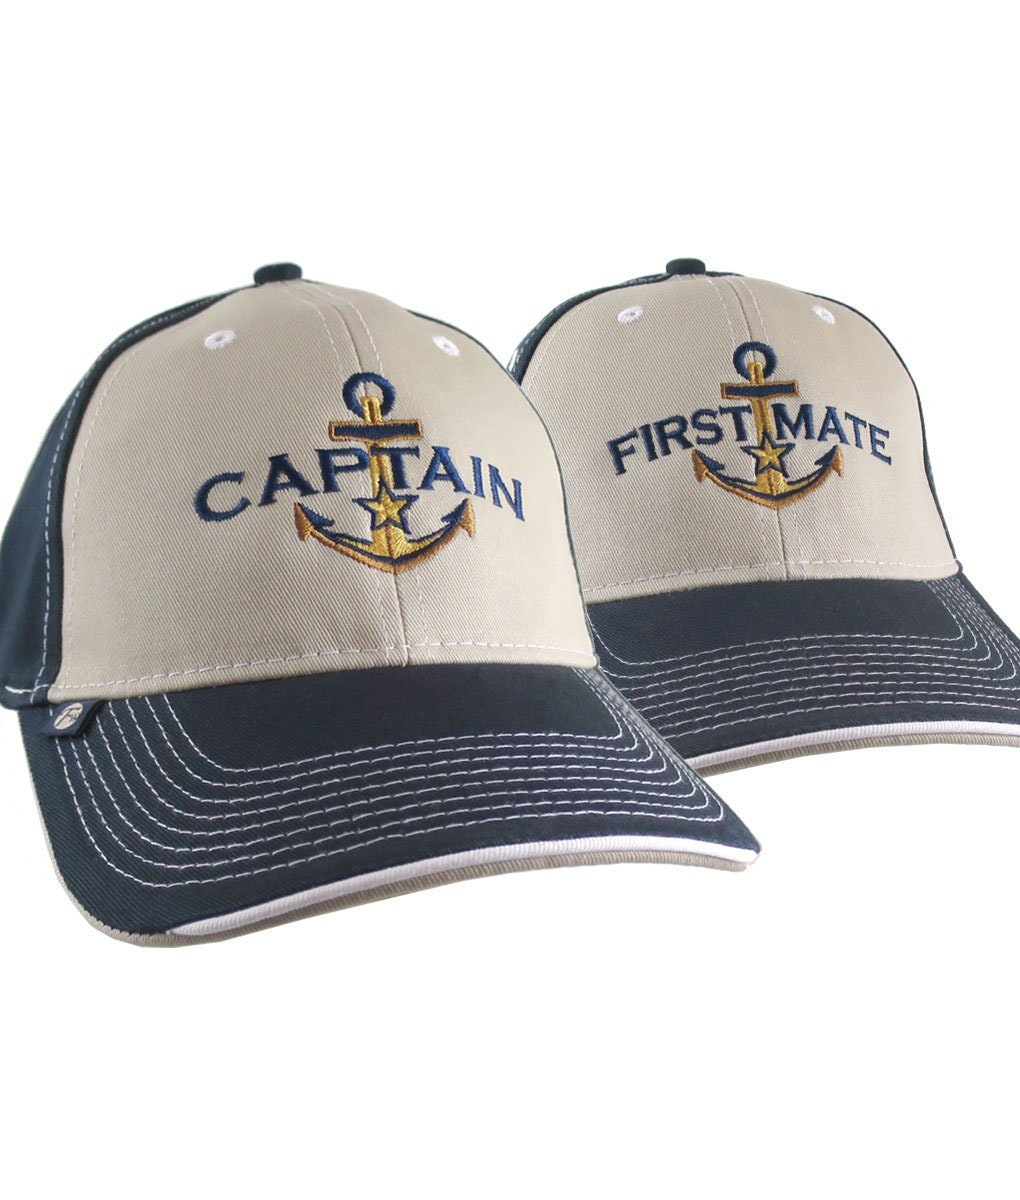 424cc01e4ef15 2 Hats Nautical Golden Star Anchor Captain + First Mate Embroidery  Adjustable Beige + Navy Structured Baseball Caps + Options to Personalize